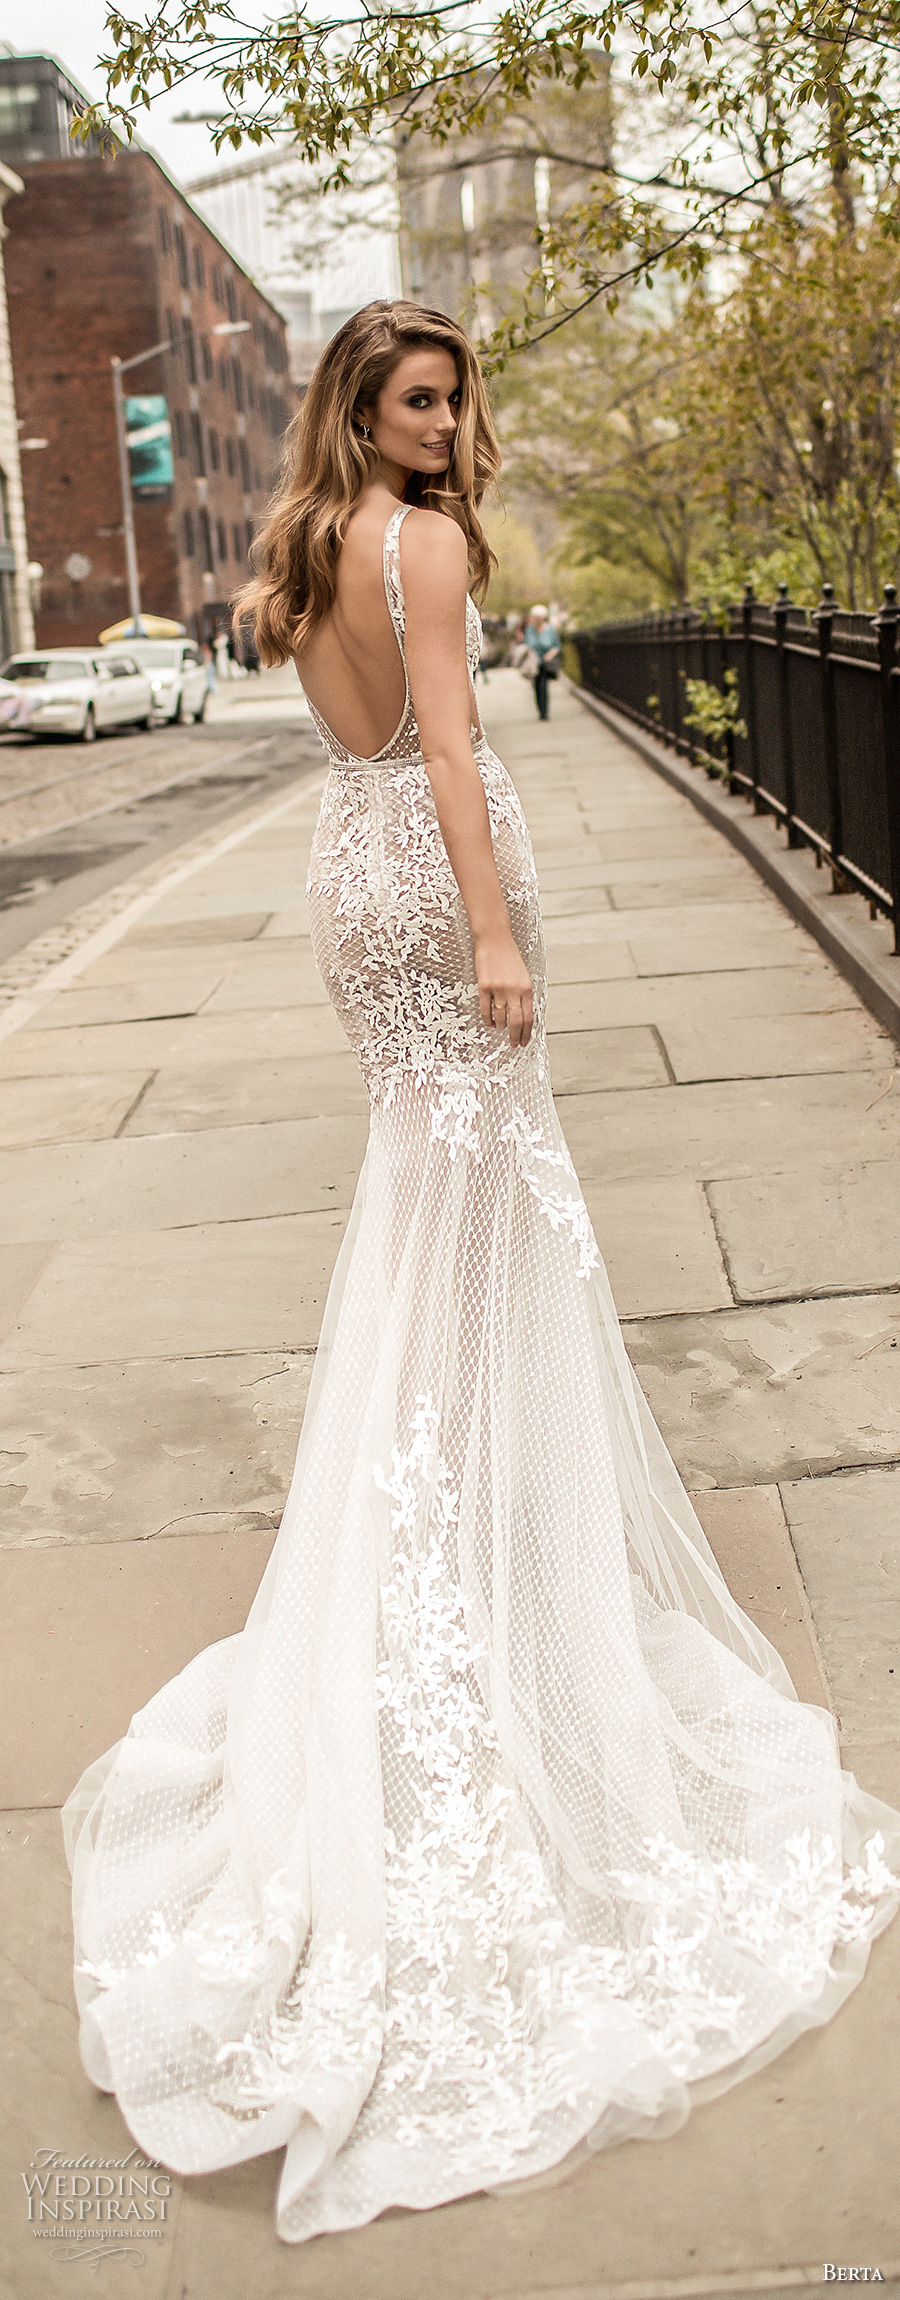 berta spring 2018 bridal thin strap deep plunging v neck full embellishment elegant sexy fit and flare wedding dress cape open back chapel train (15) bv